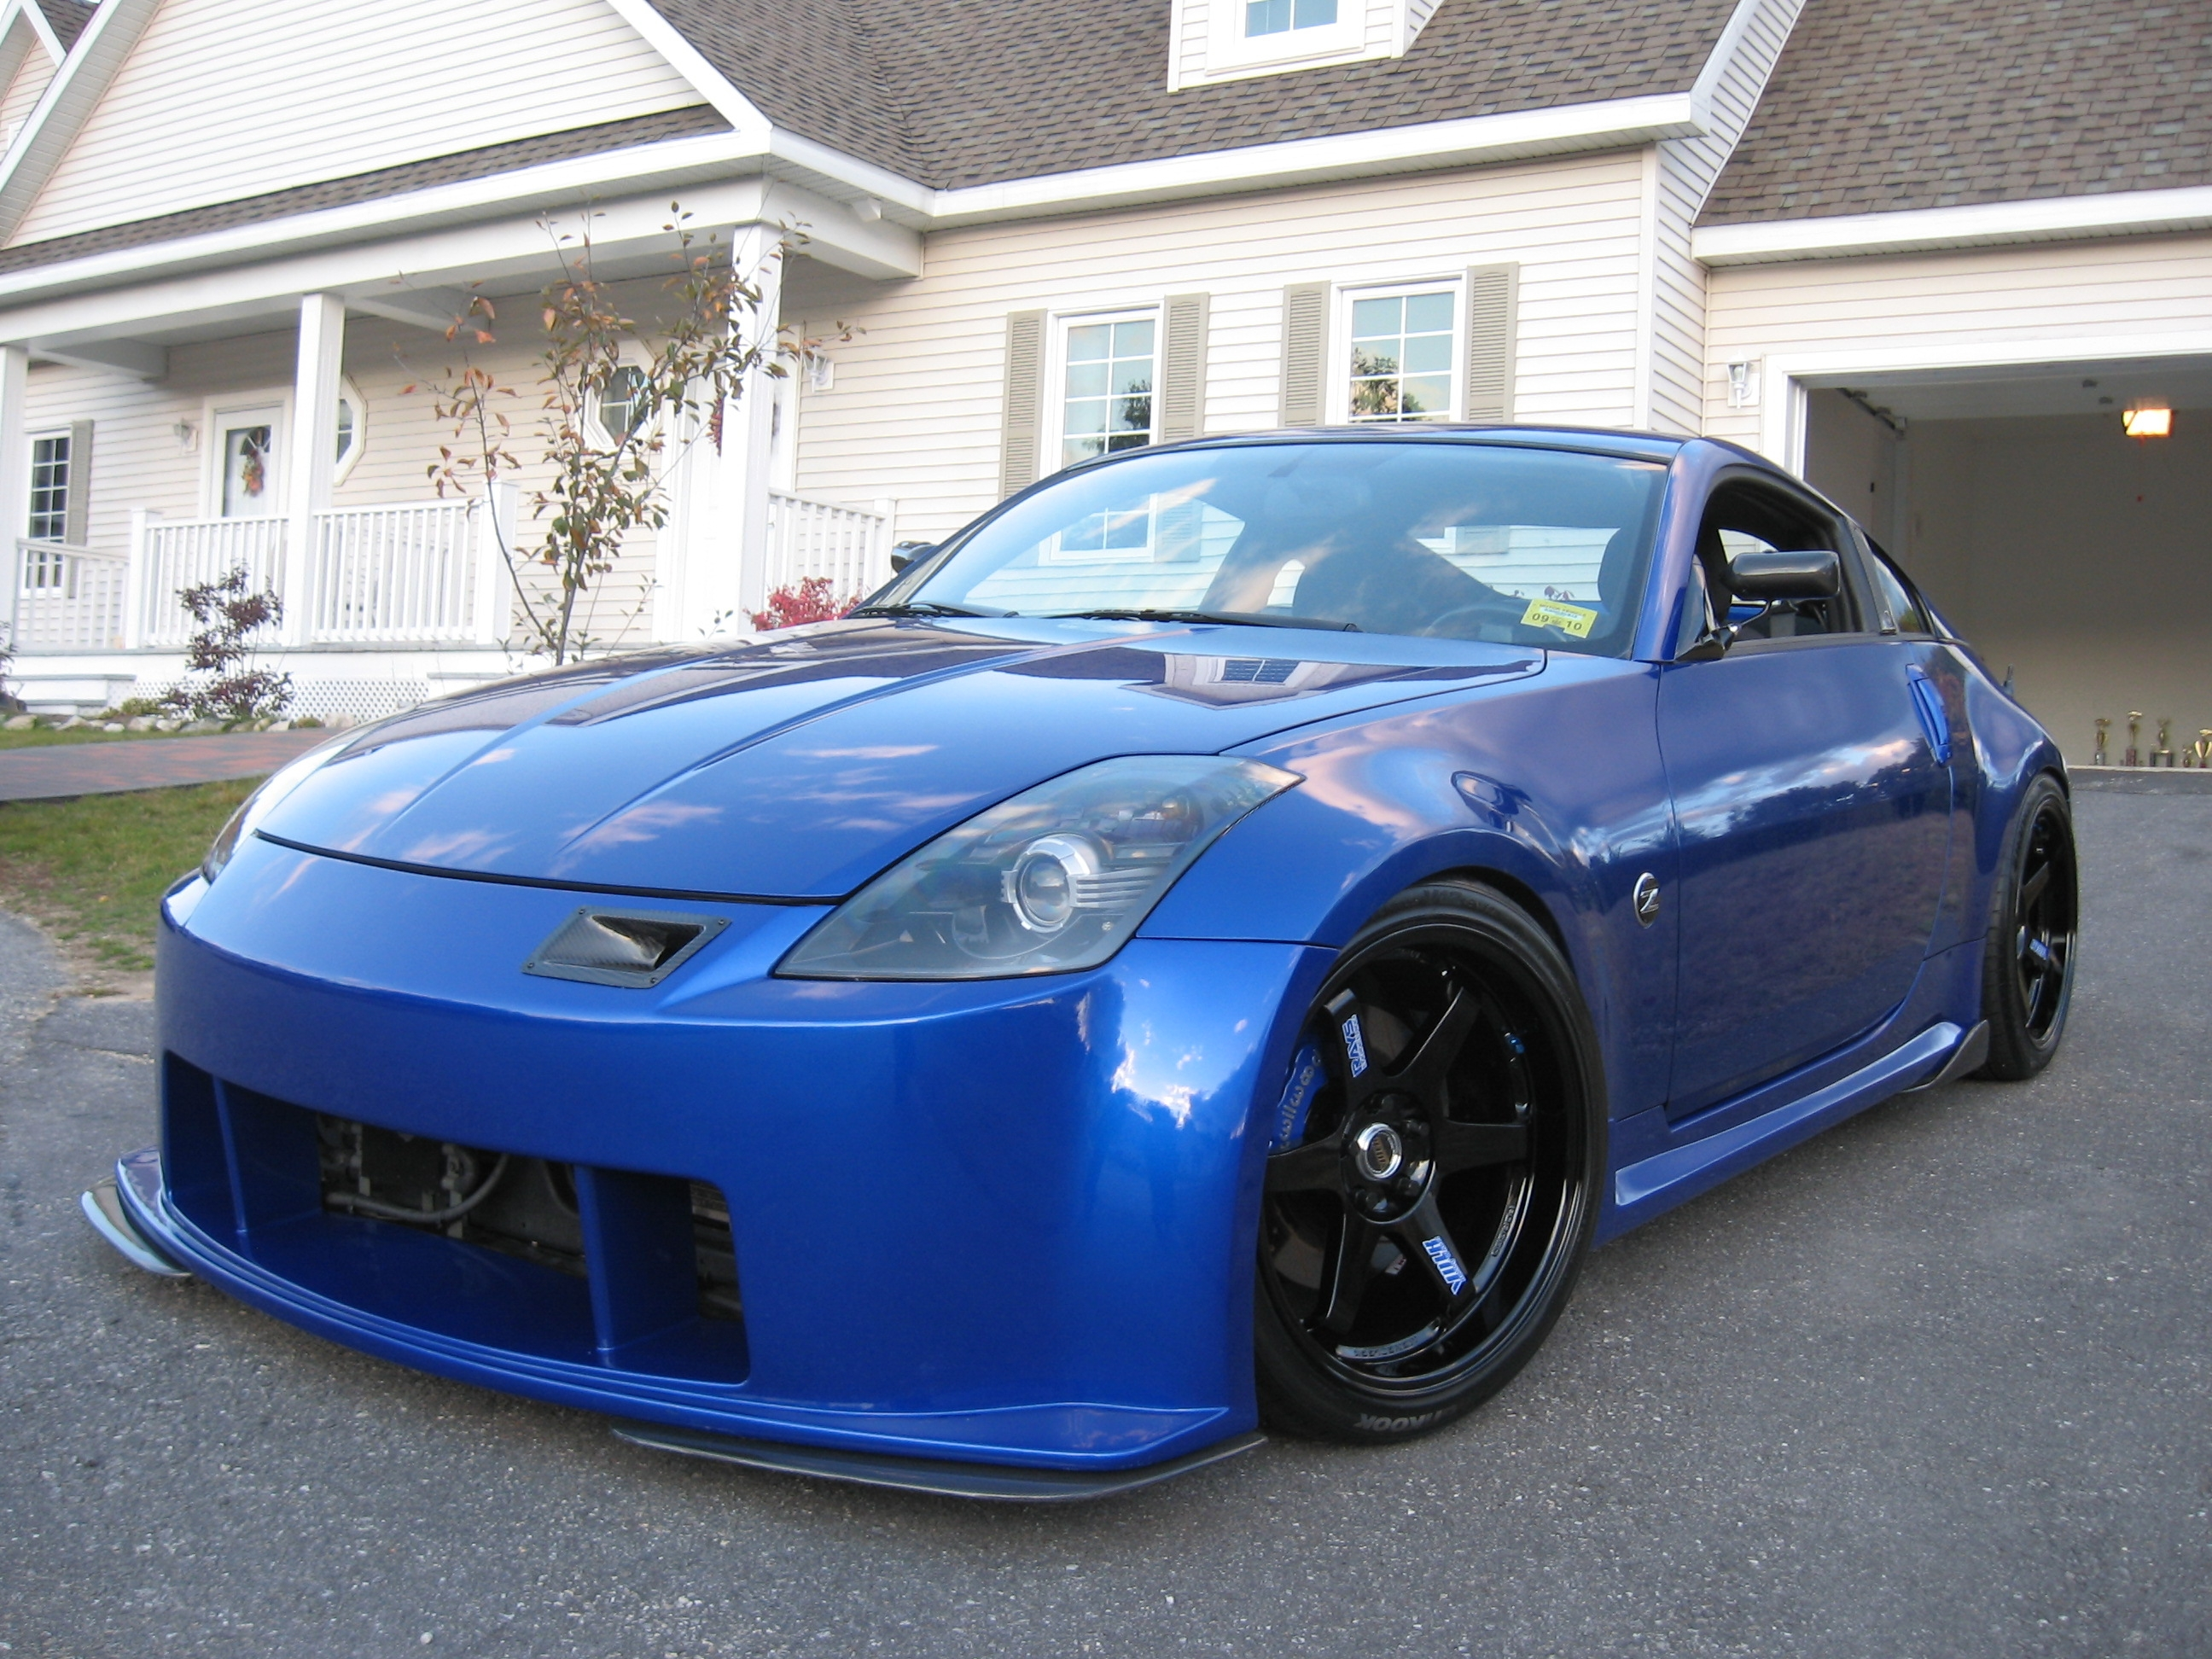 volkdb350z 2004 nissan 350z specs photos modification. Black Bedroom Furniture Sets. Home Design Ideas